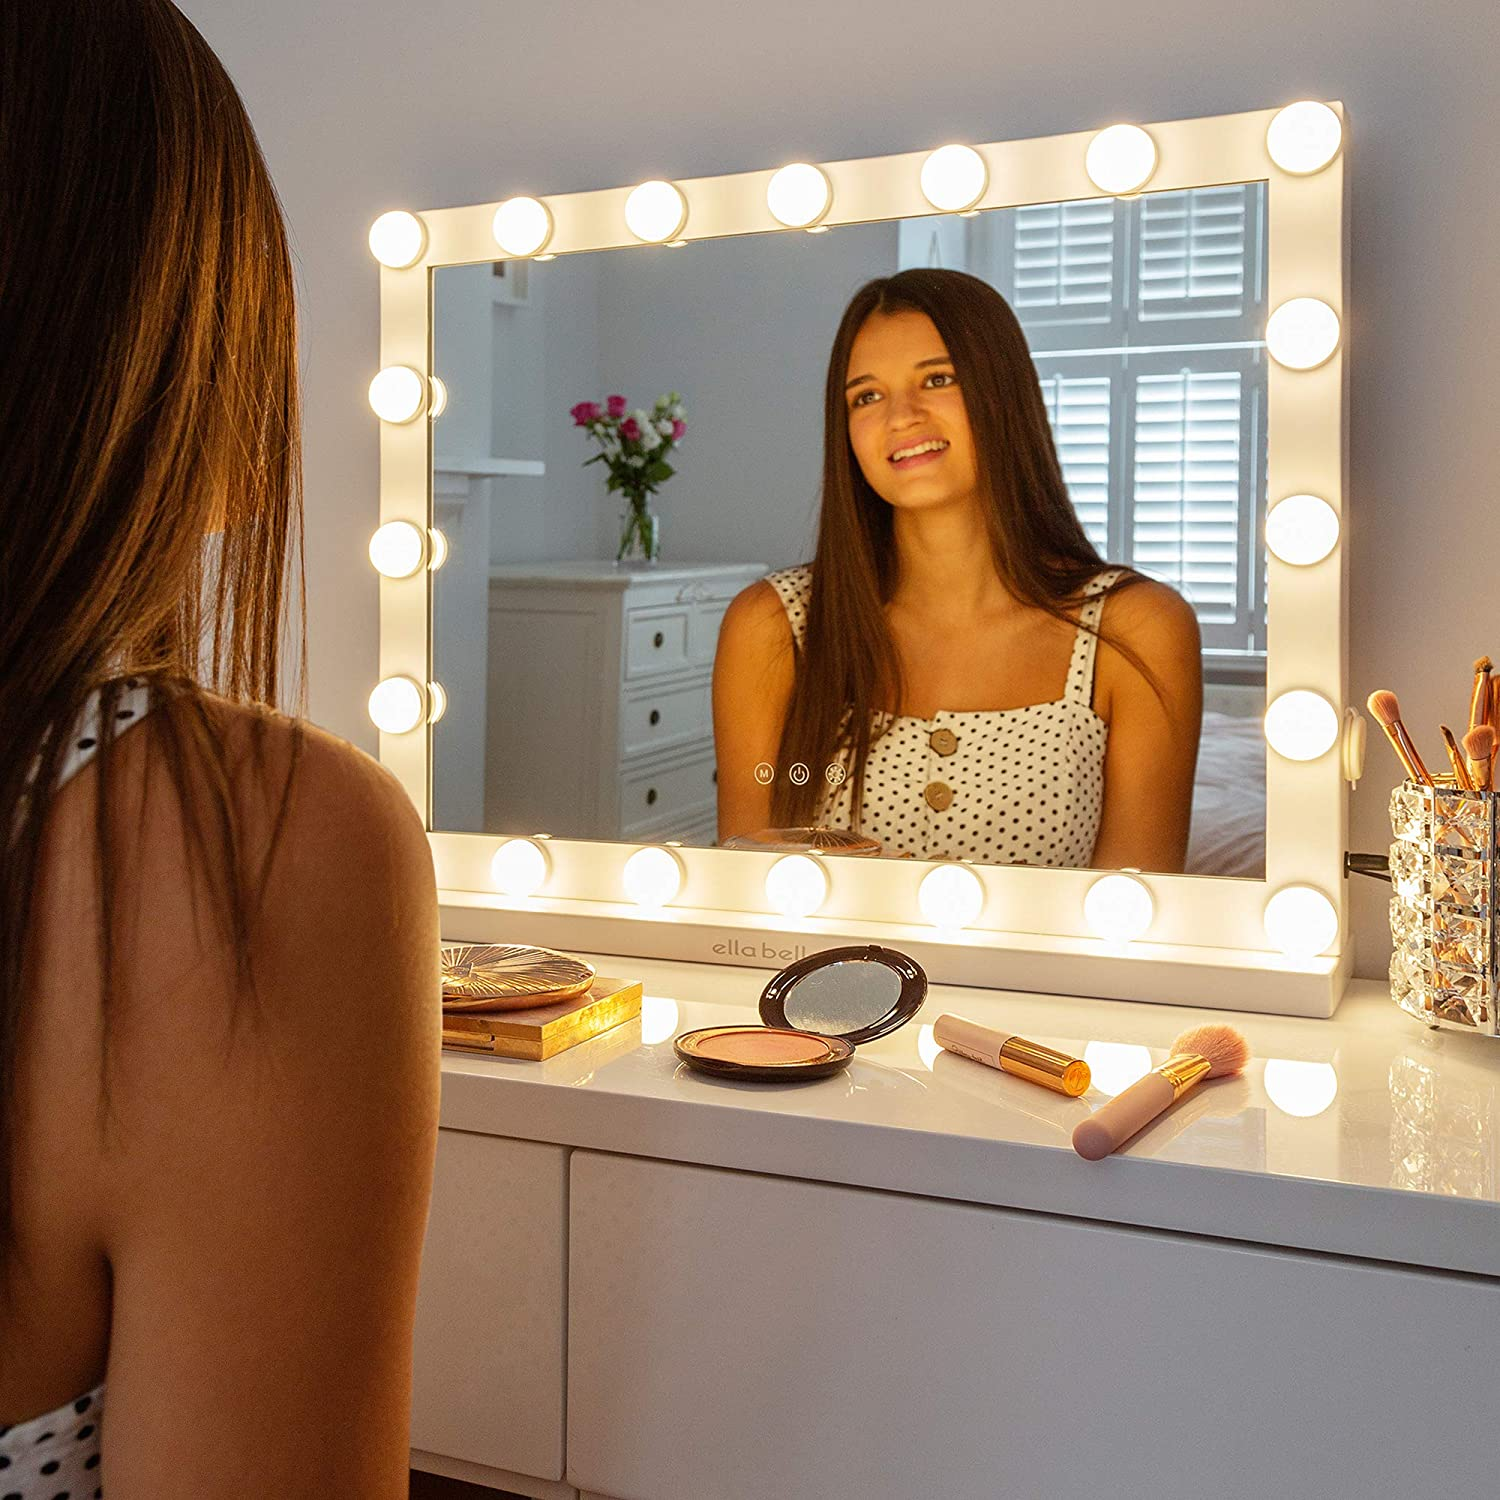 Vanity 67% OFF of fixed price Mirror with Lights Makeup Lighted Adjust Bombing new work Fully